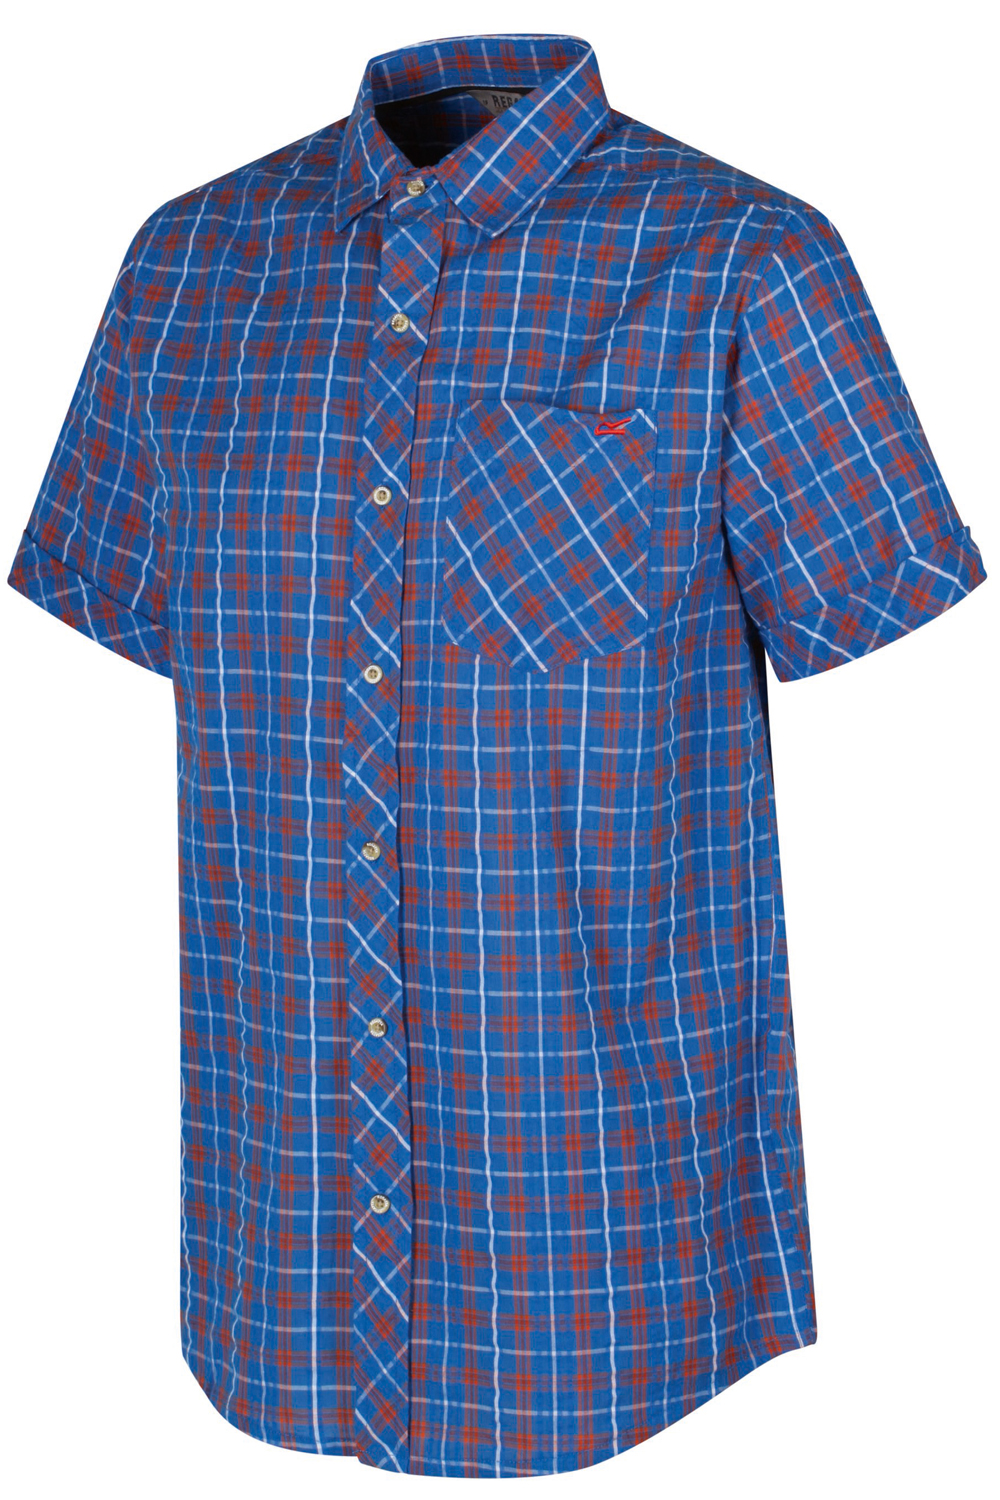 Regatta-Mens-Deakin-II-Coolweave-Cotton-Short-Sleeved-Summer-Check-Shirt-RRP-50 thumbnail 26